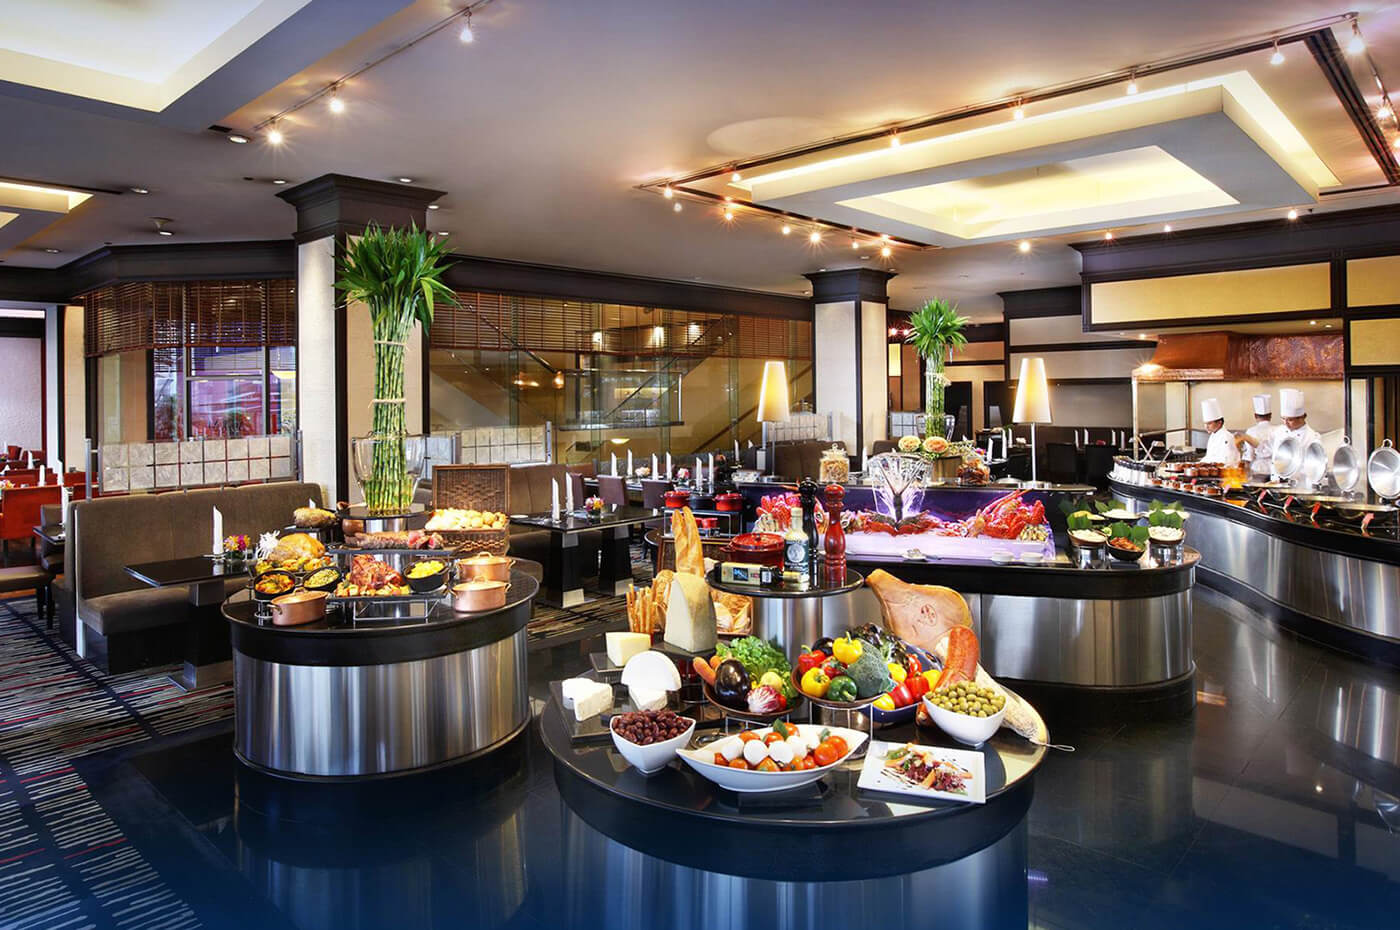 Atrium - INTERNATIONAL CUISINE IN A LIVE BUFFET THEATRE